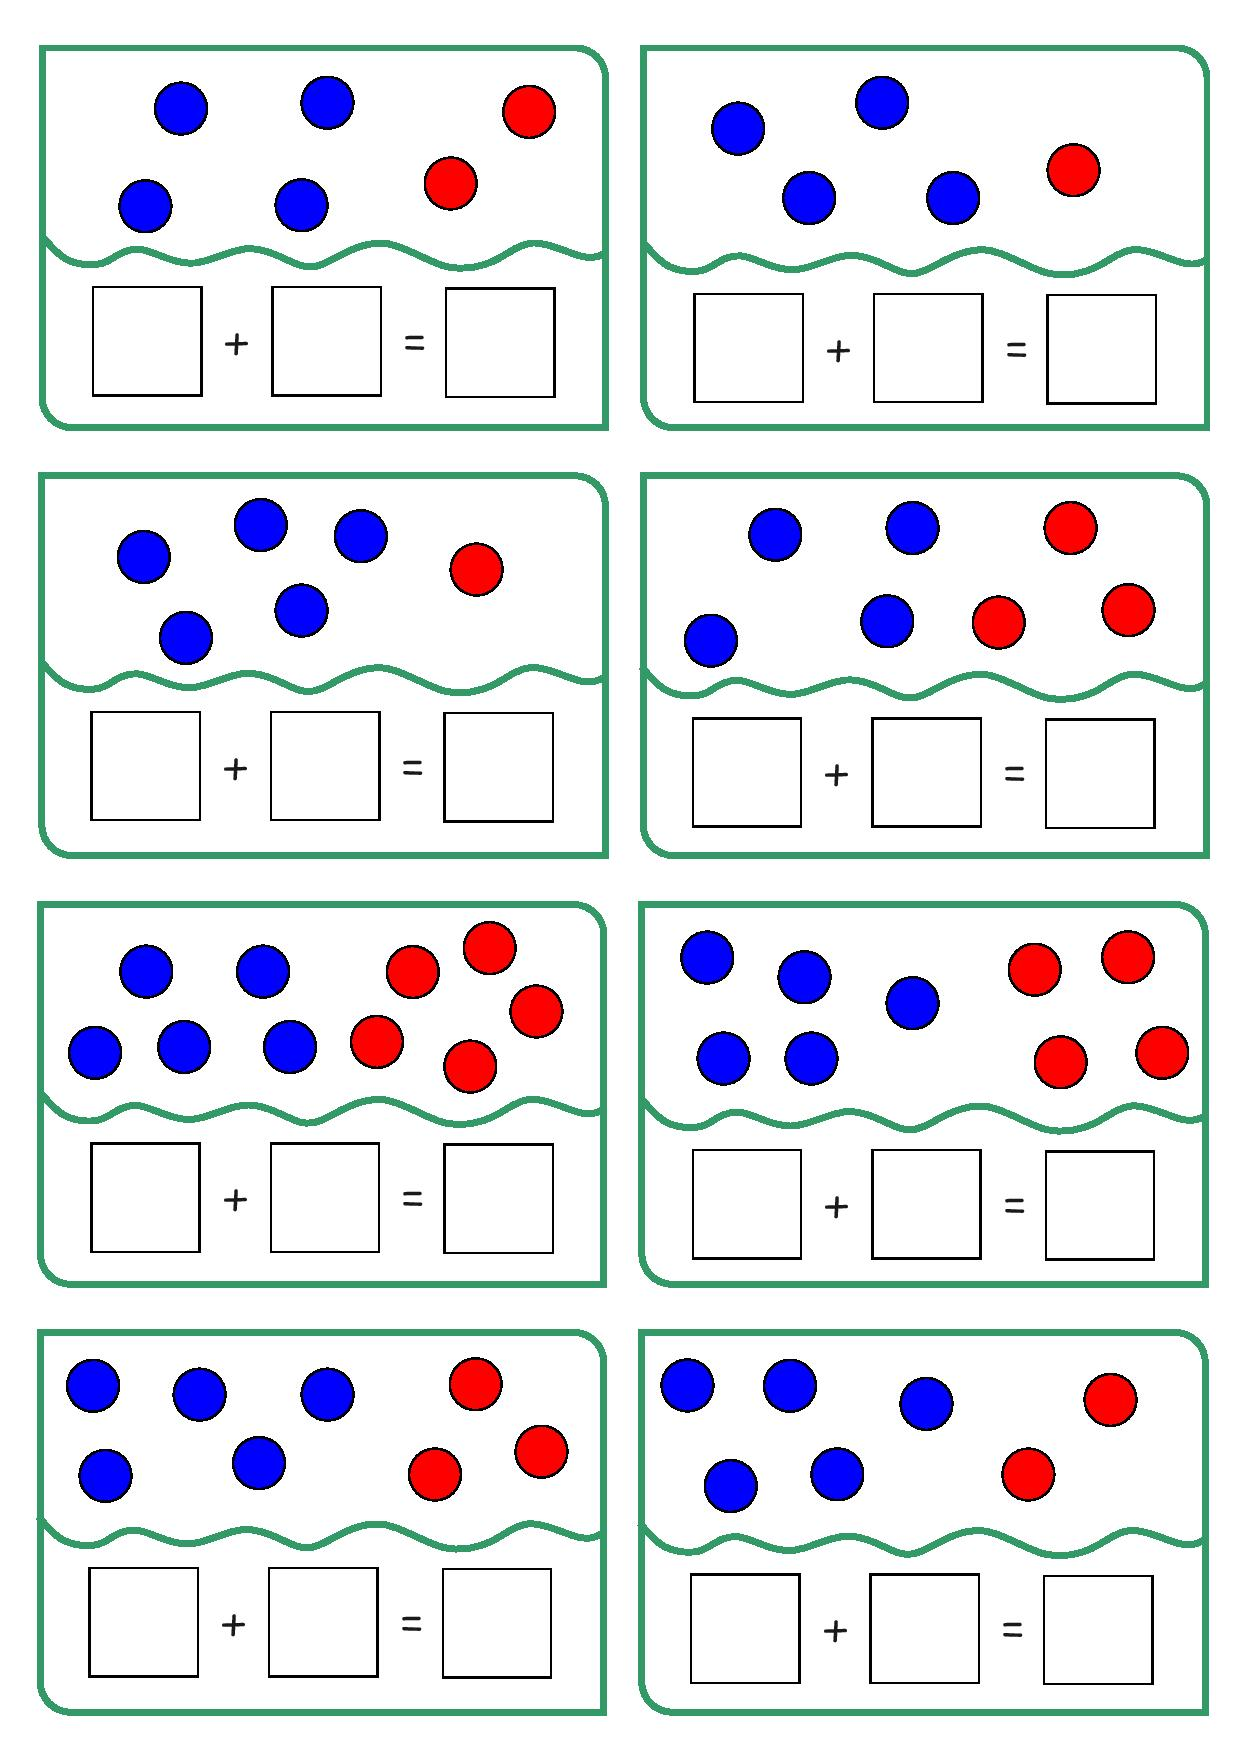 fun addition worksheets fun addition sheets for kids 4 - Fun Kids Sheets